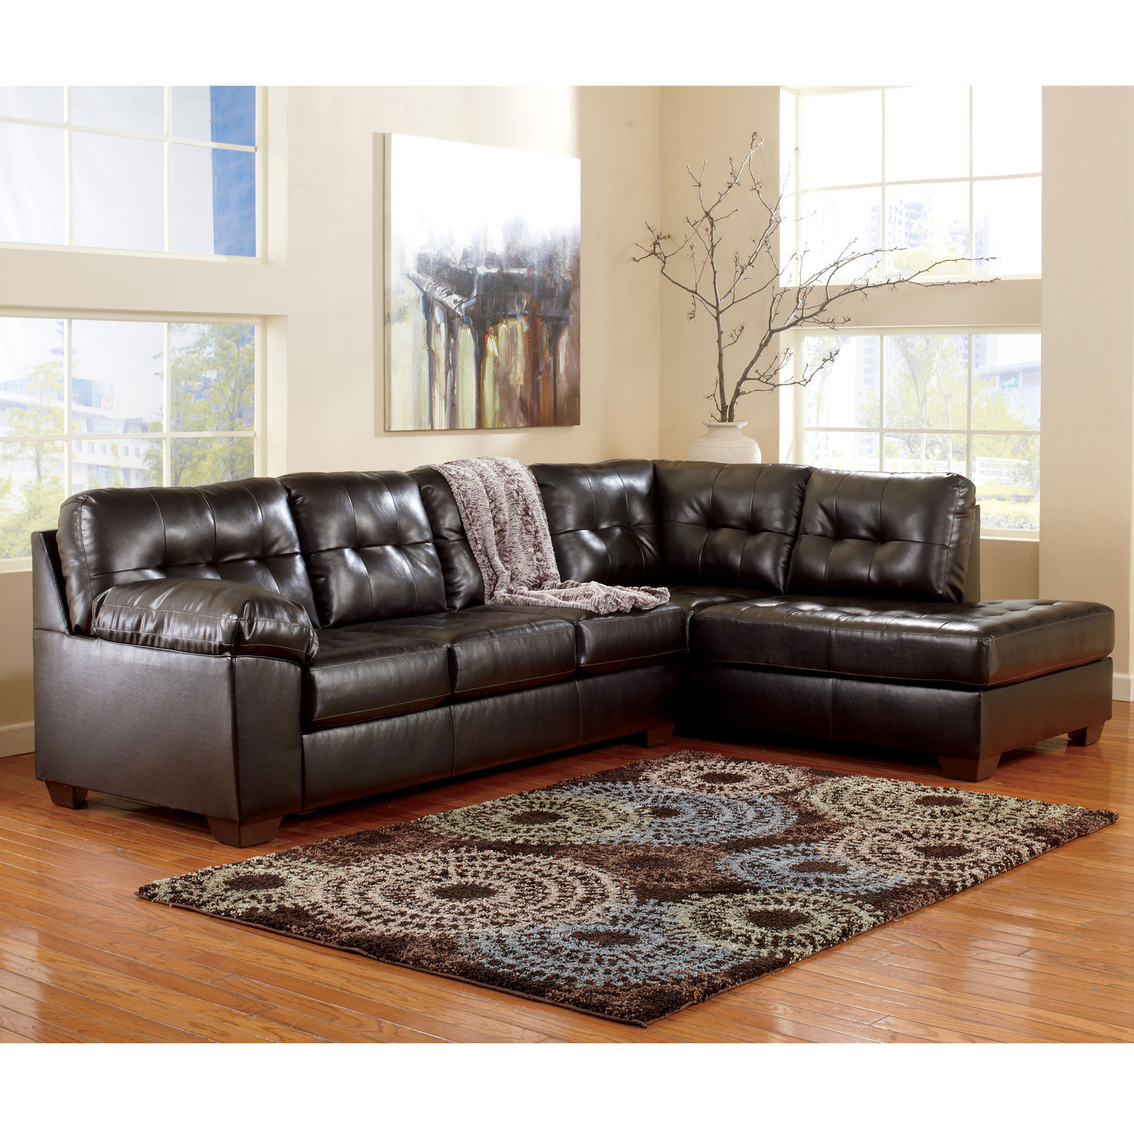 Signature design by ashley alliston durablend 2 pc for Ashley furniture sofa with chaise